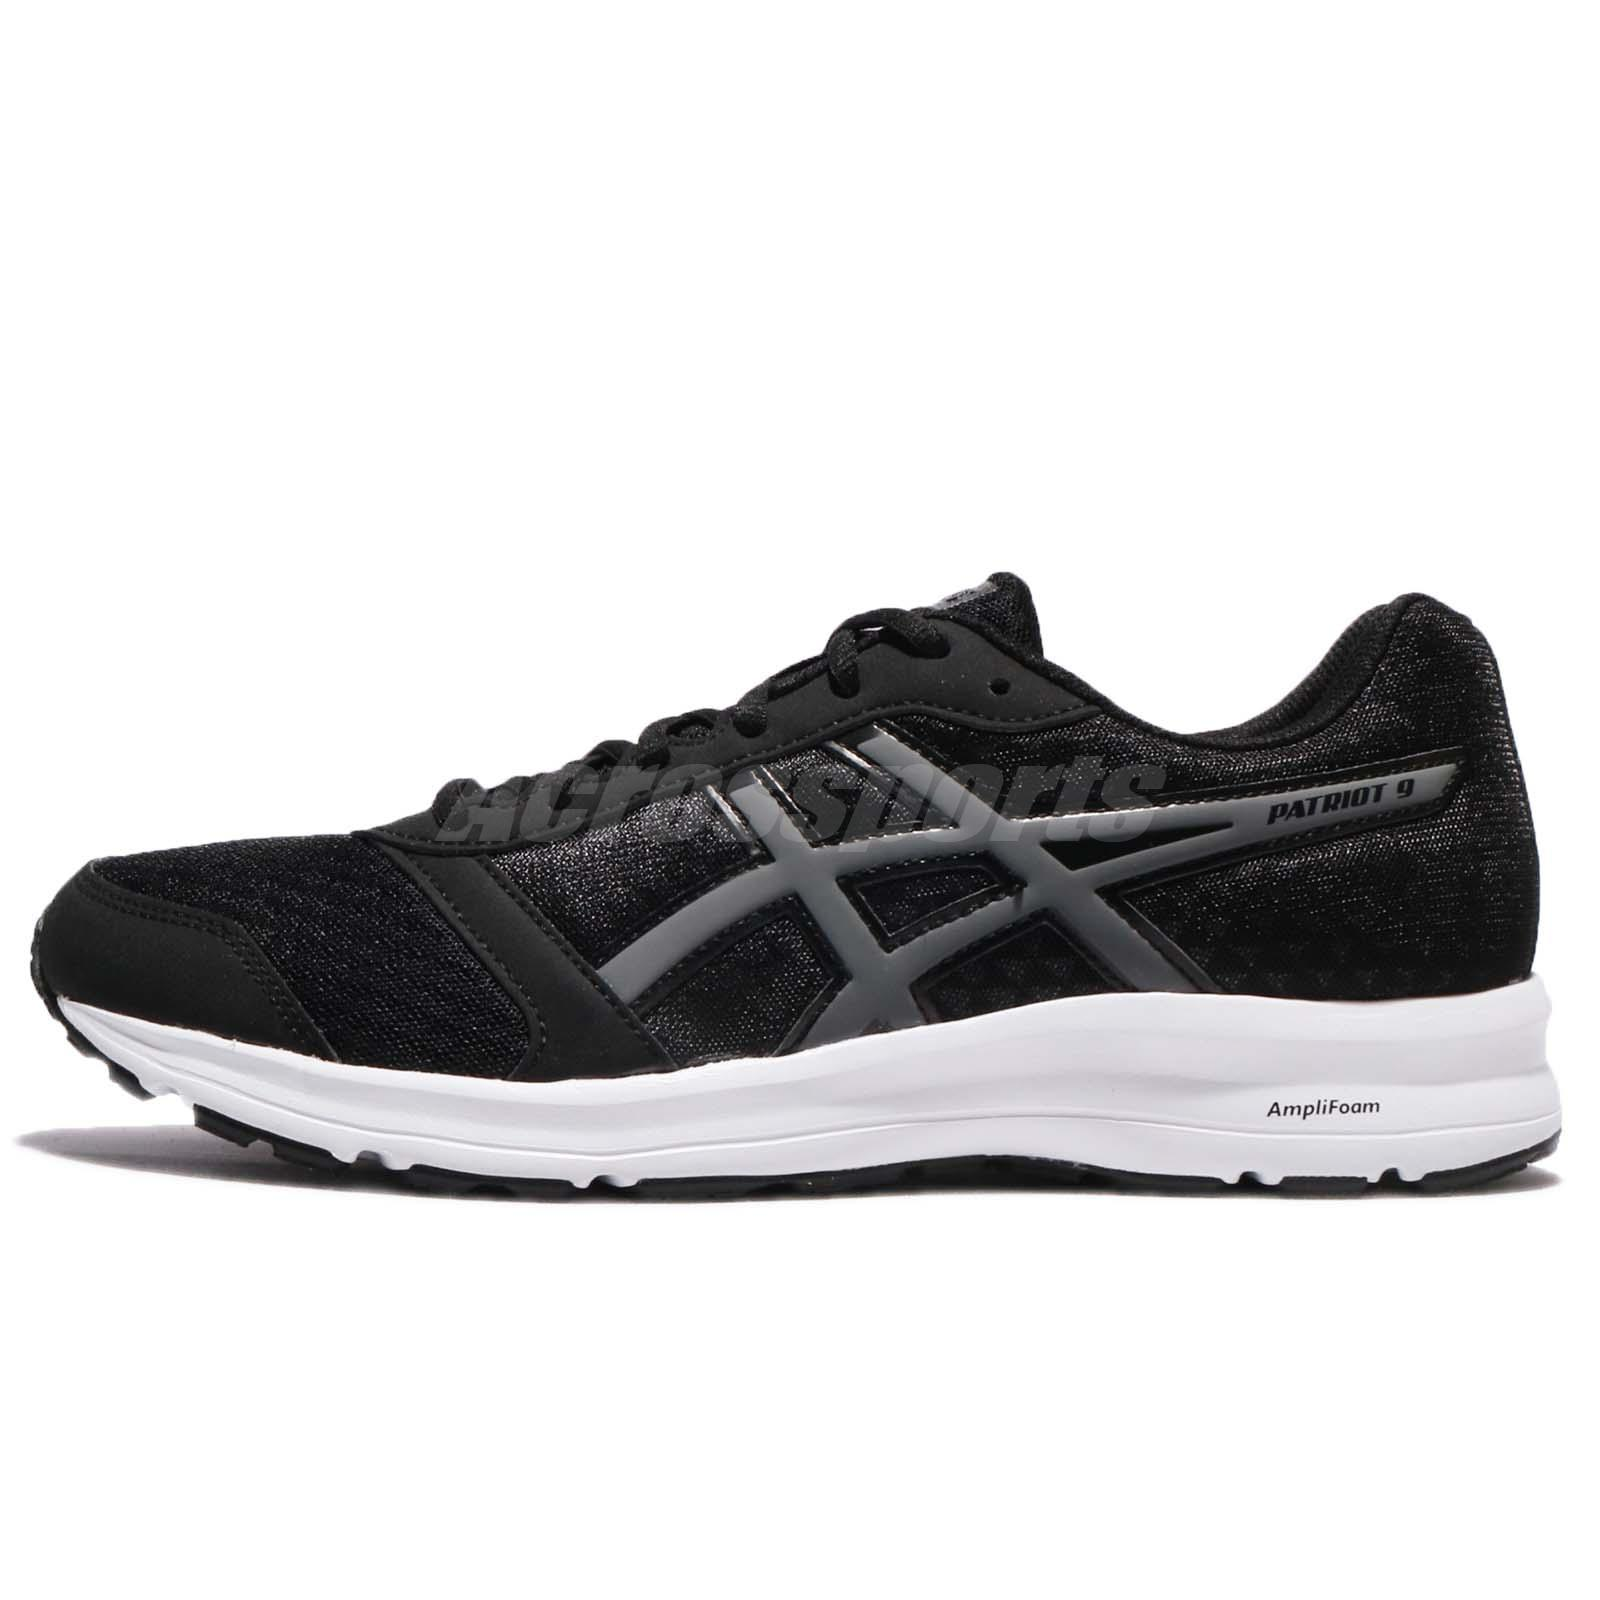 Asics Patriot 9 IX Men Running Athletic Shoes Sneaker Trainers Pick 1